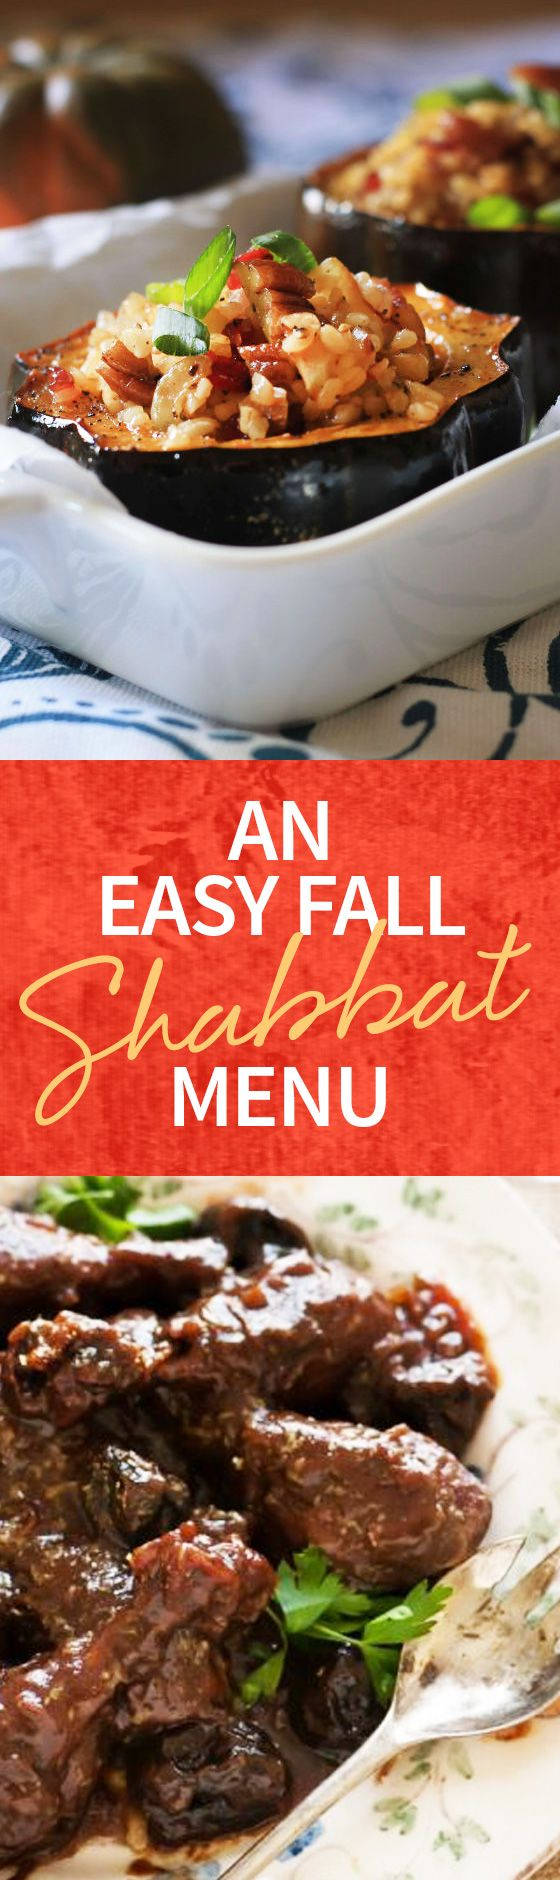 This week seeing is believing as we reveal some of our favorite Fall flavored recipes that work perfectly in an easy Shabbat Menu! http://www.joyofkosher.com/.preview/cn01fab40aa0002547?auth=08b65e55ed17296daf442773e36b0ac9d96e4675&nonce=1478266934078